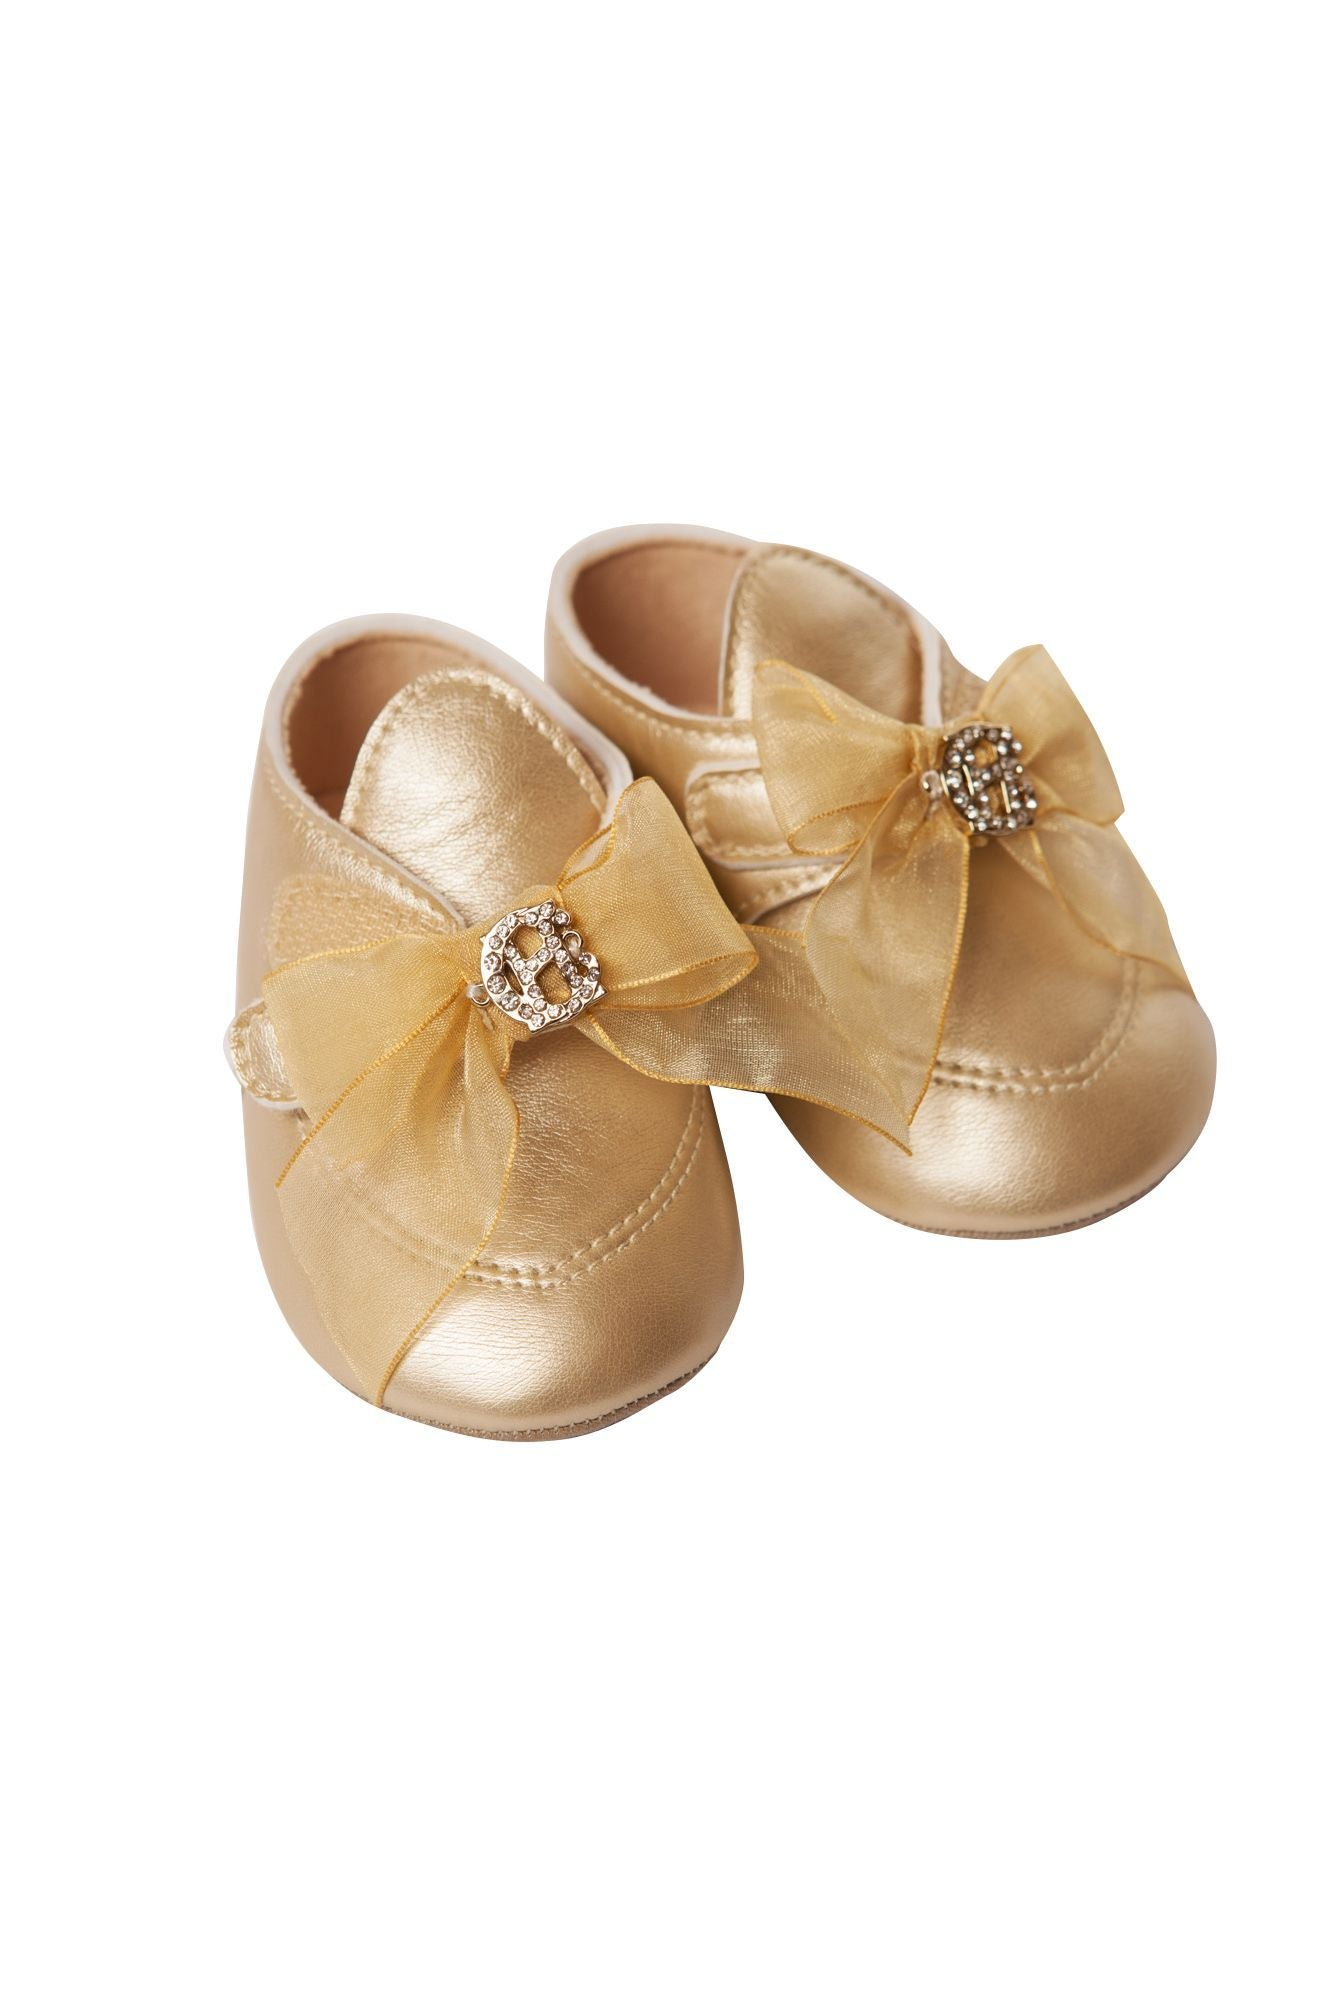 Gold Crib Shoes with Bow